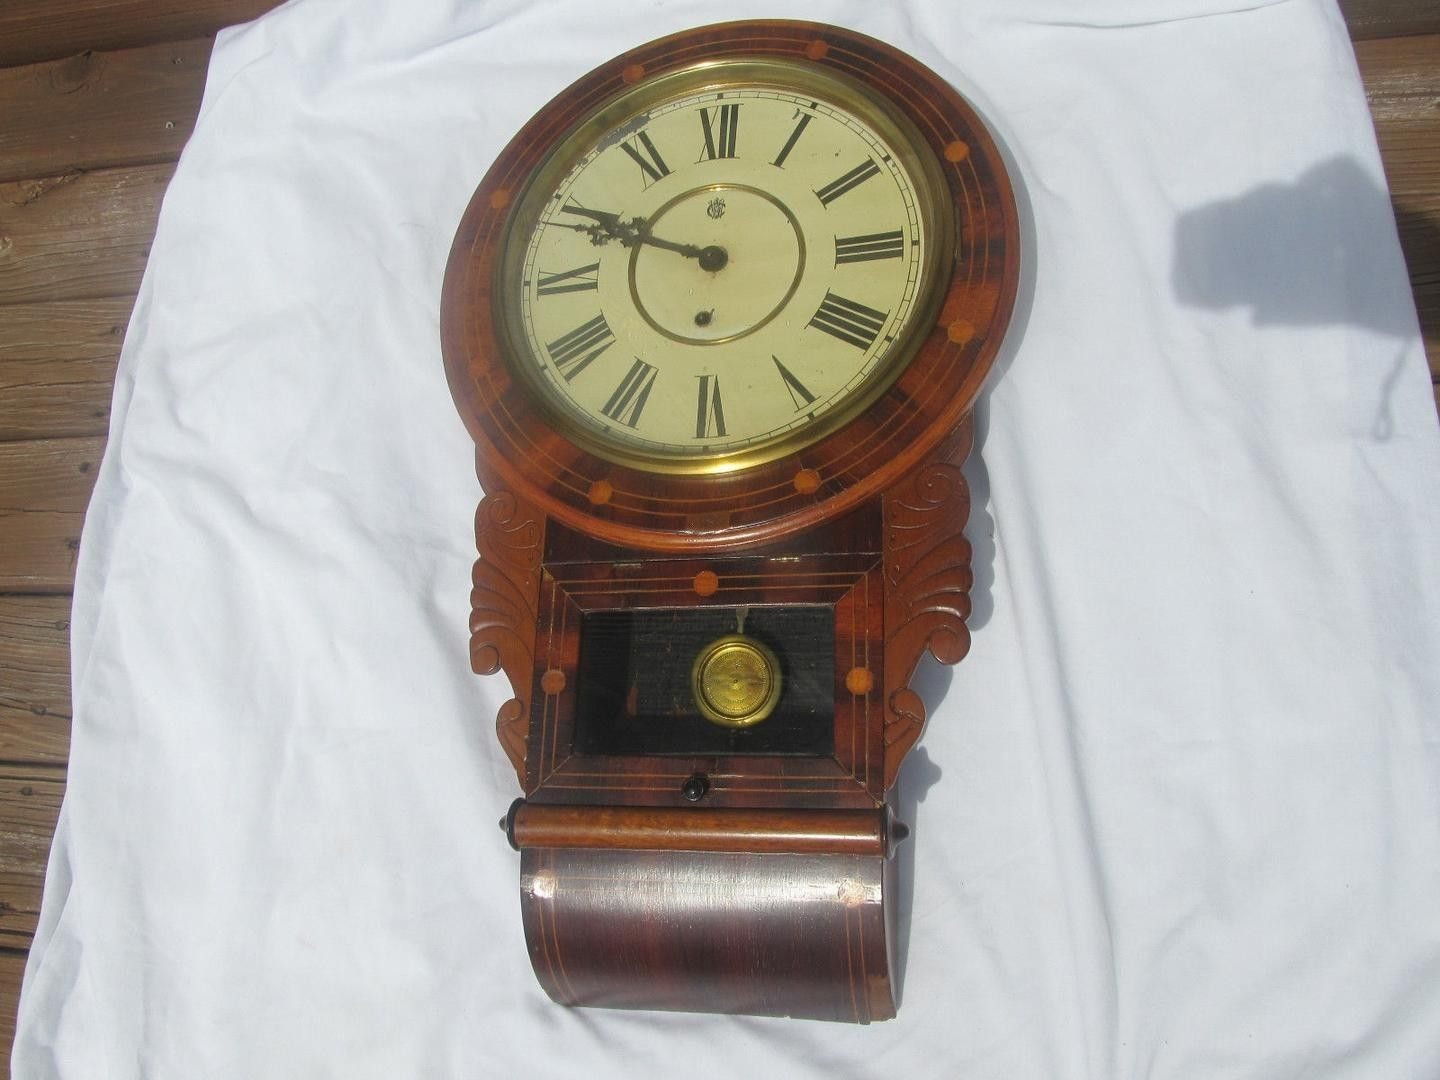 Am americana country wall clocks - Today I Am Offering A Very Rare And Beautiful Waterbury Clock With A Patent Date On